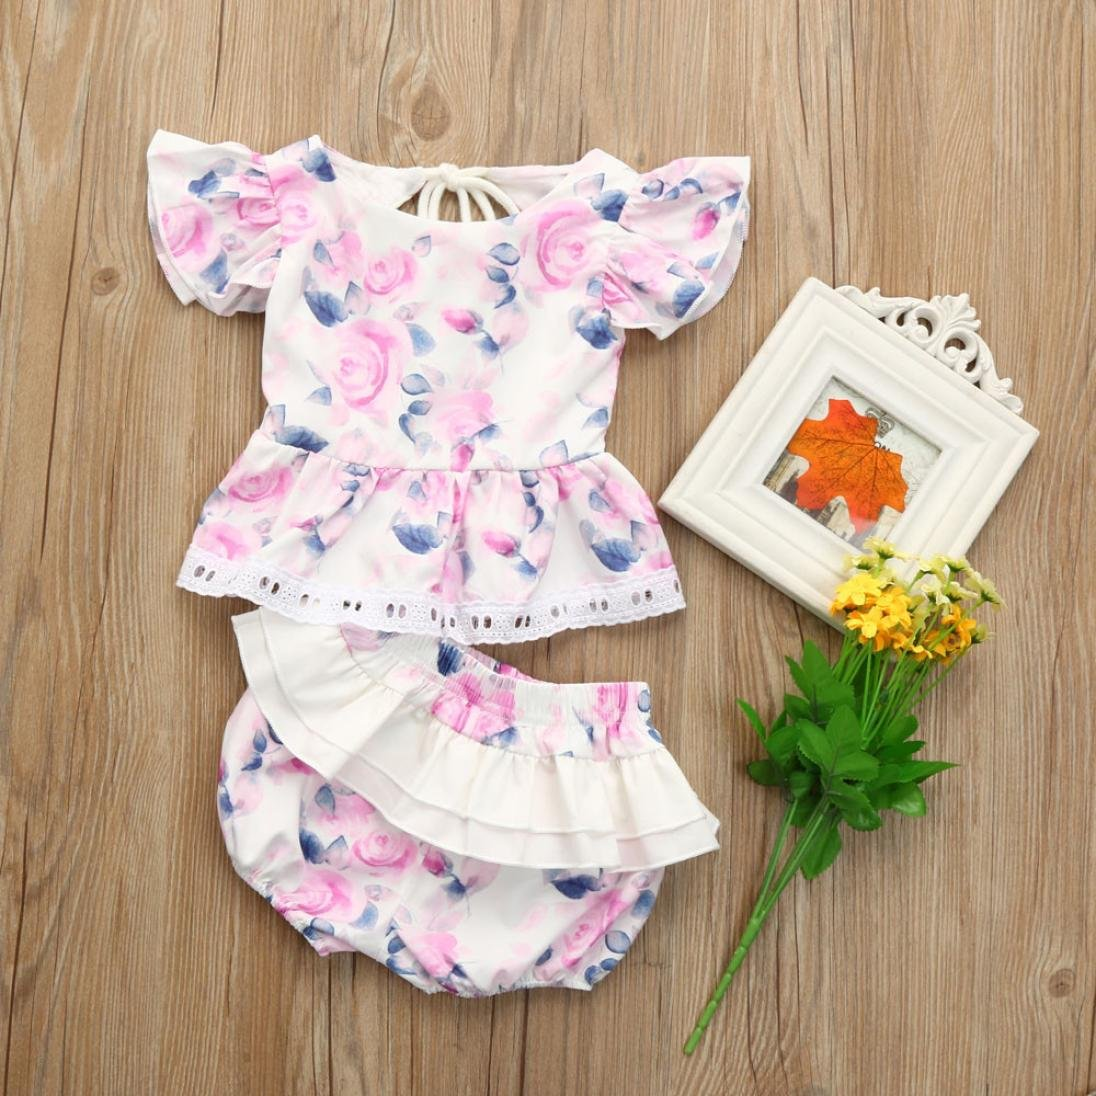 Winsummer Baby Infant Girls Floral Ruffle Tutu Skirt Tube Top Short Outfit Overalls Clothing Set